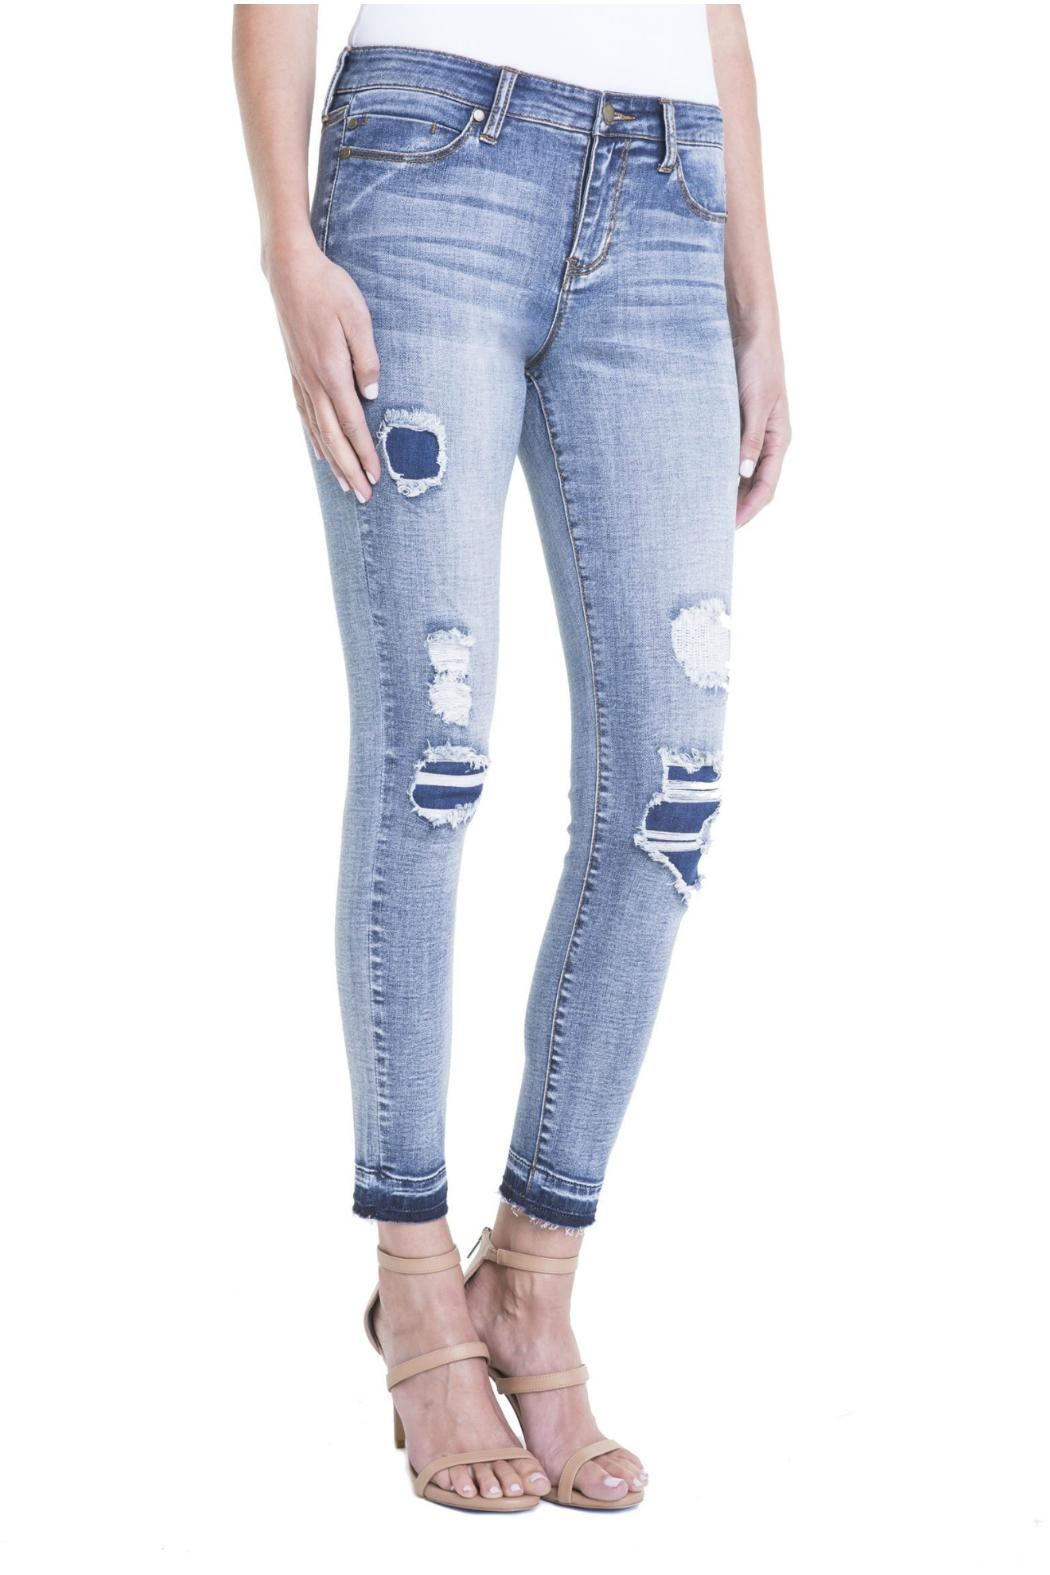 Liverpool Jeans Company Vintage Skinny Ankle - Front Cropped Image